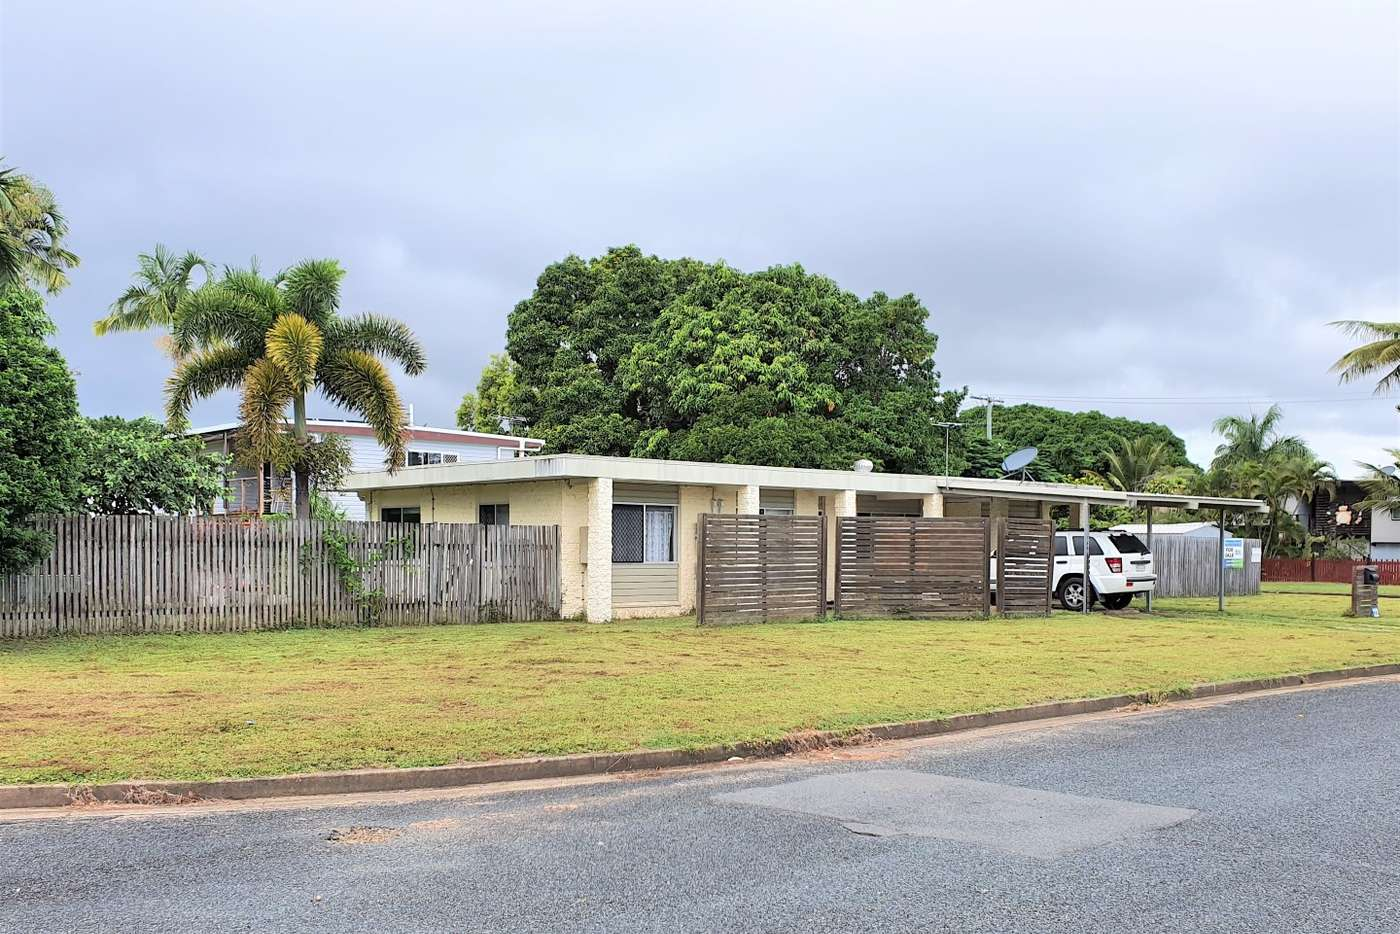 Main view of Homely house listing, 22 Brampton Avenue, Bucasia QLD 4750